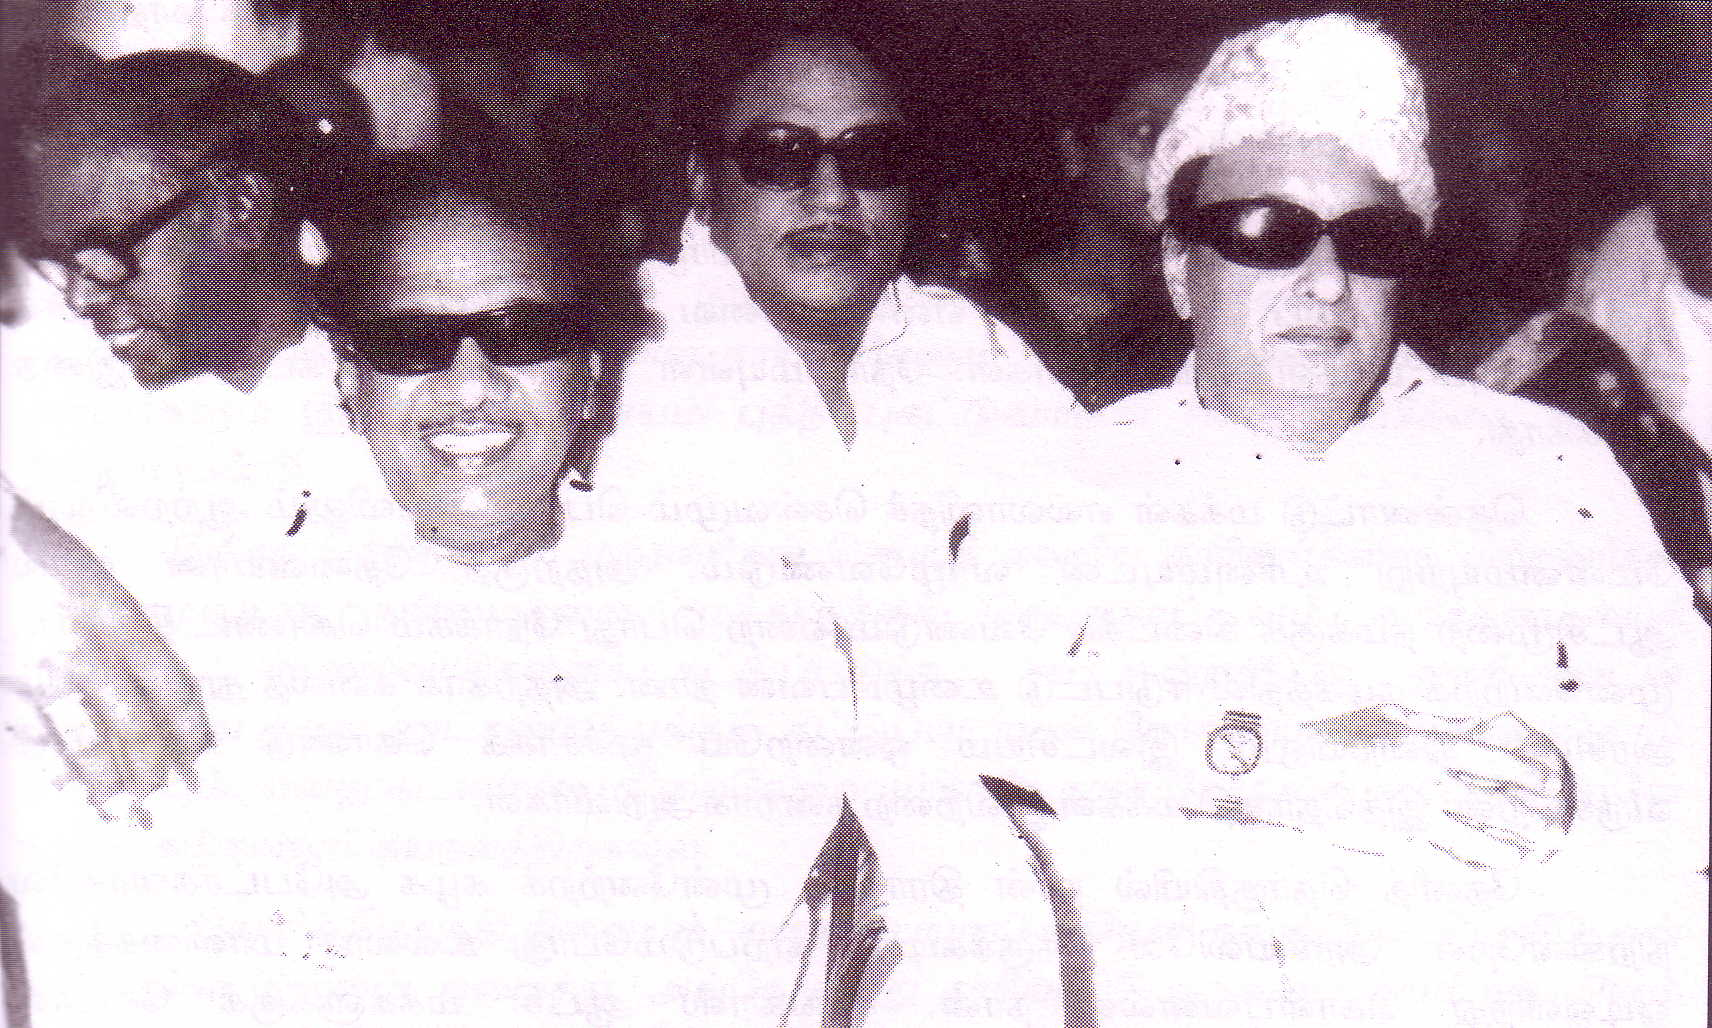 SSR in between Karunanidhi and MGR